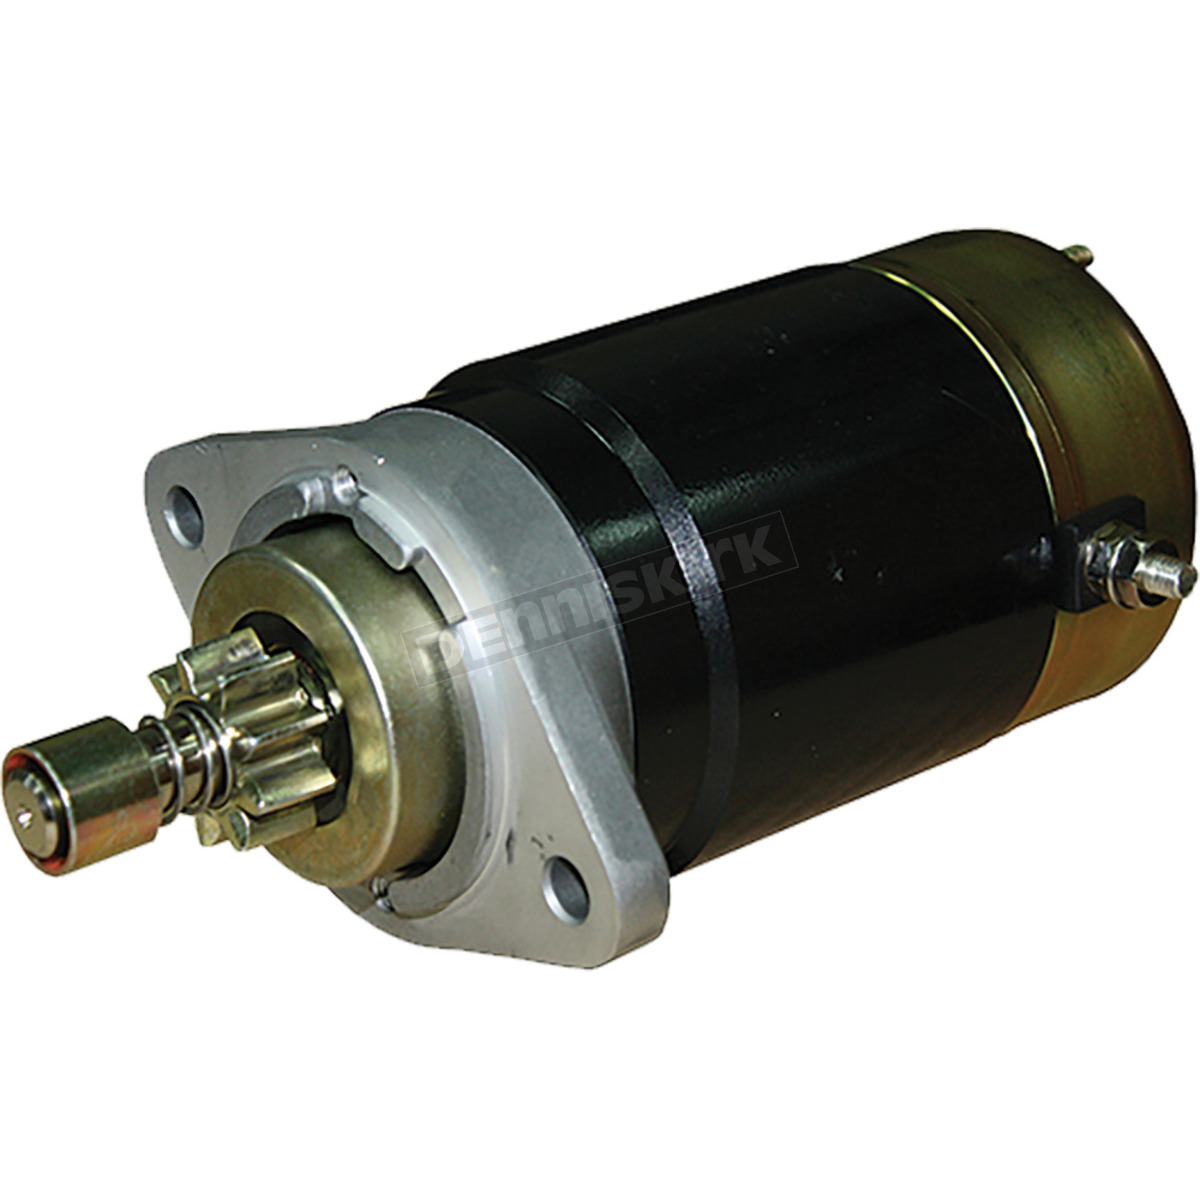 Sports parts inc starter motor sm 01328 snowmobile for Nhd inc motor starter